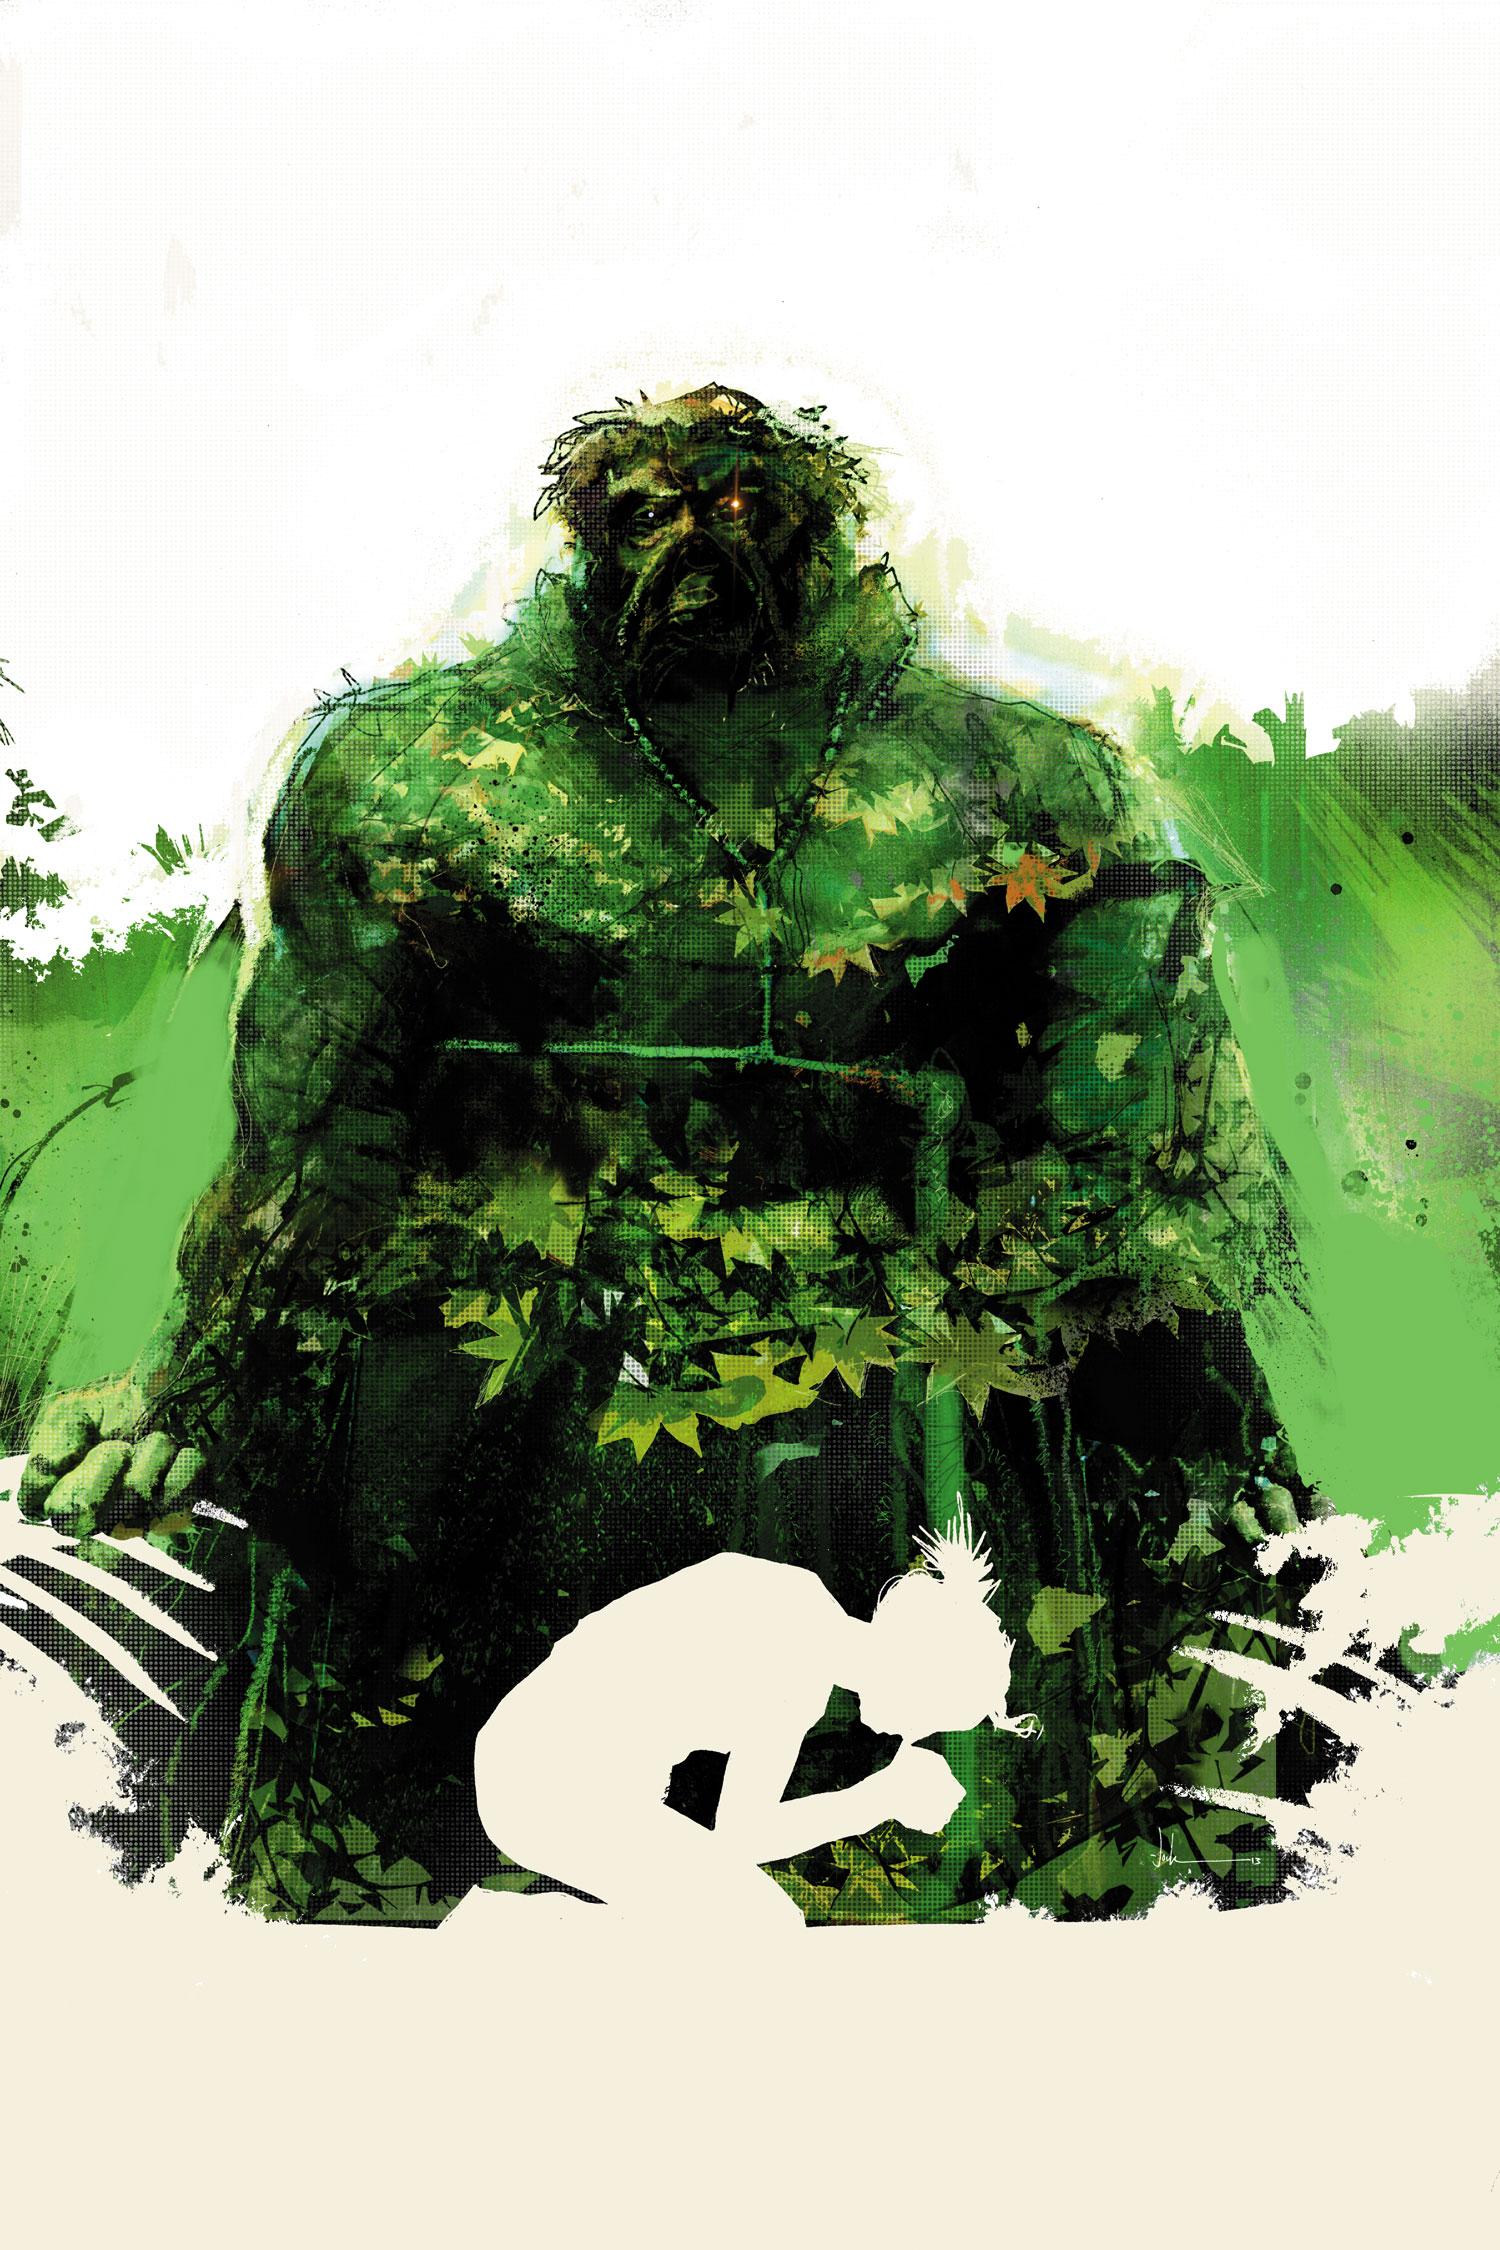 Swamp Thing #21 Cover Art by Jock